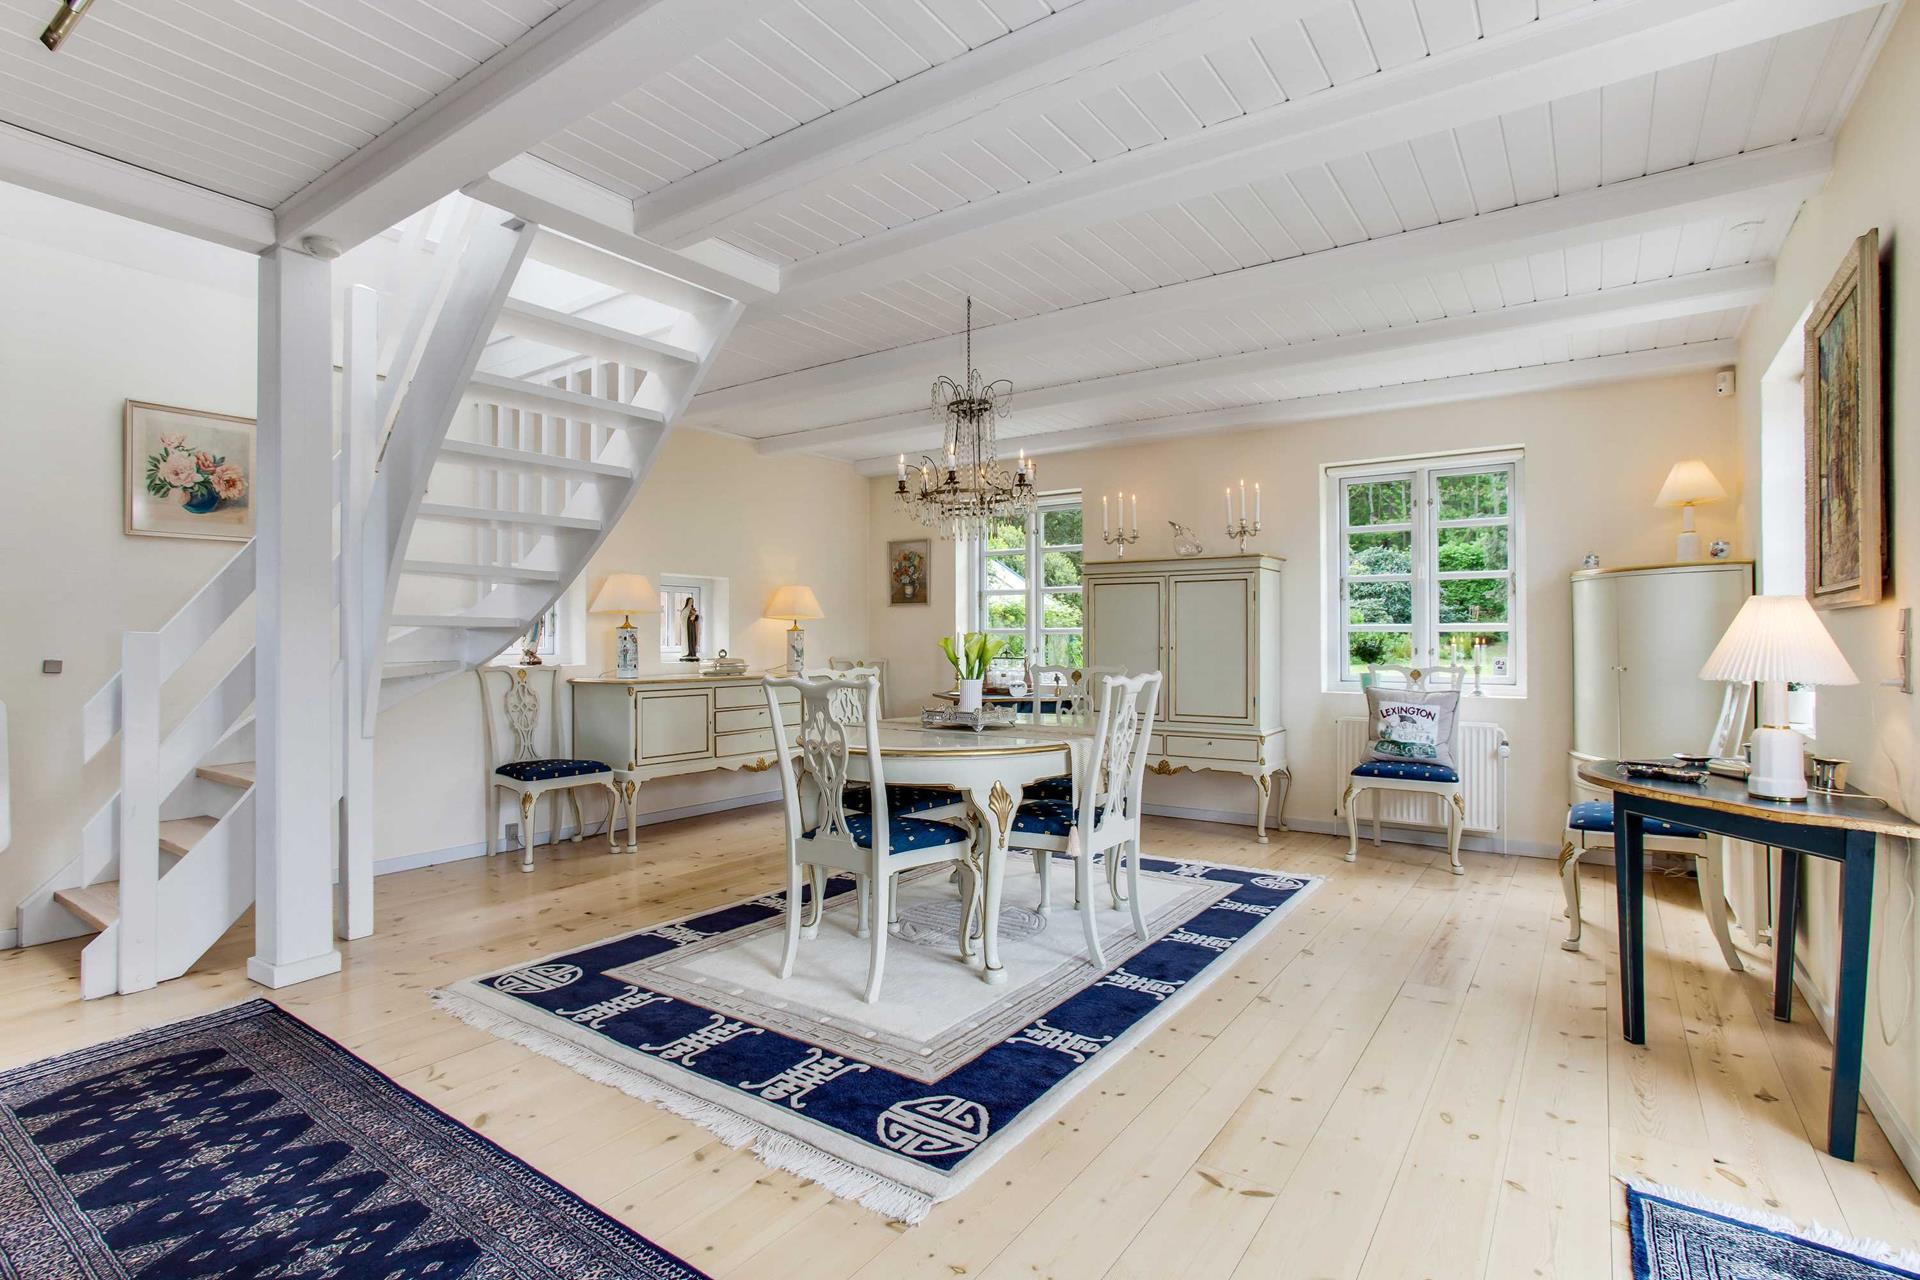 Classic Style Furniture fro Practical Chic Interiors. Blue carpet to emphasize the dining area